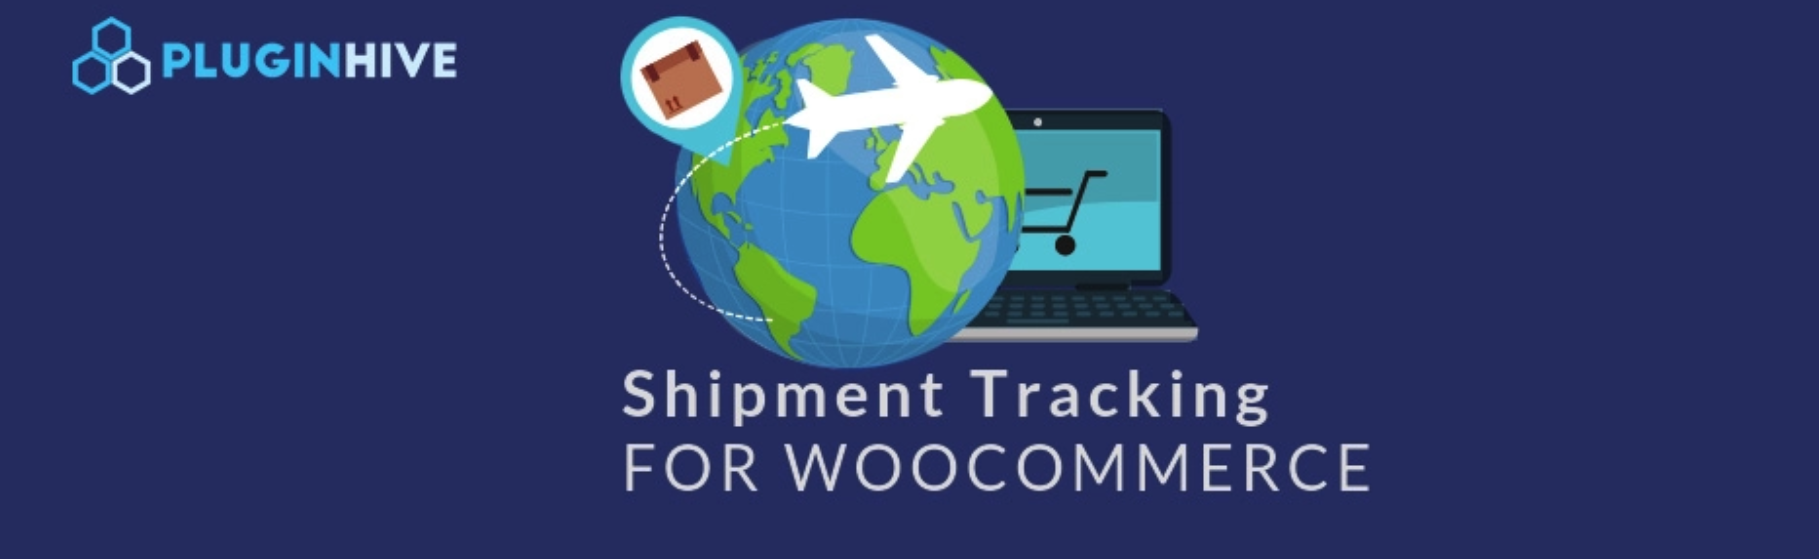 woocommerce shipment tracking aftership